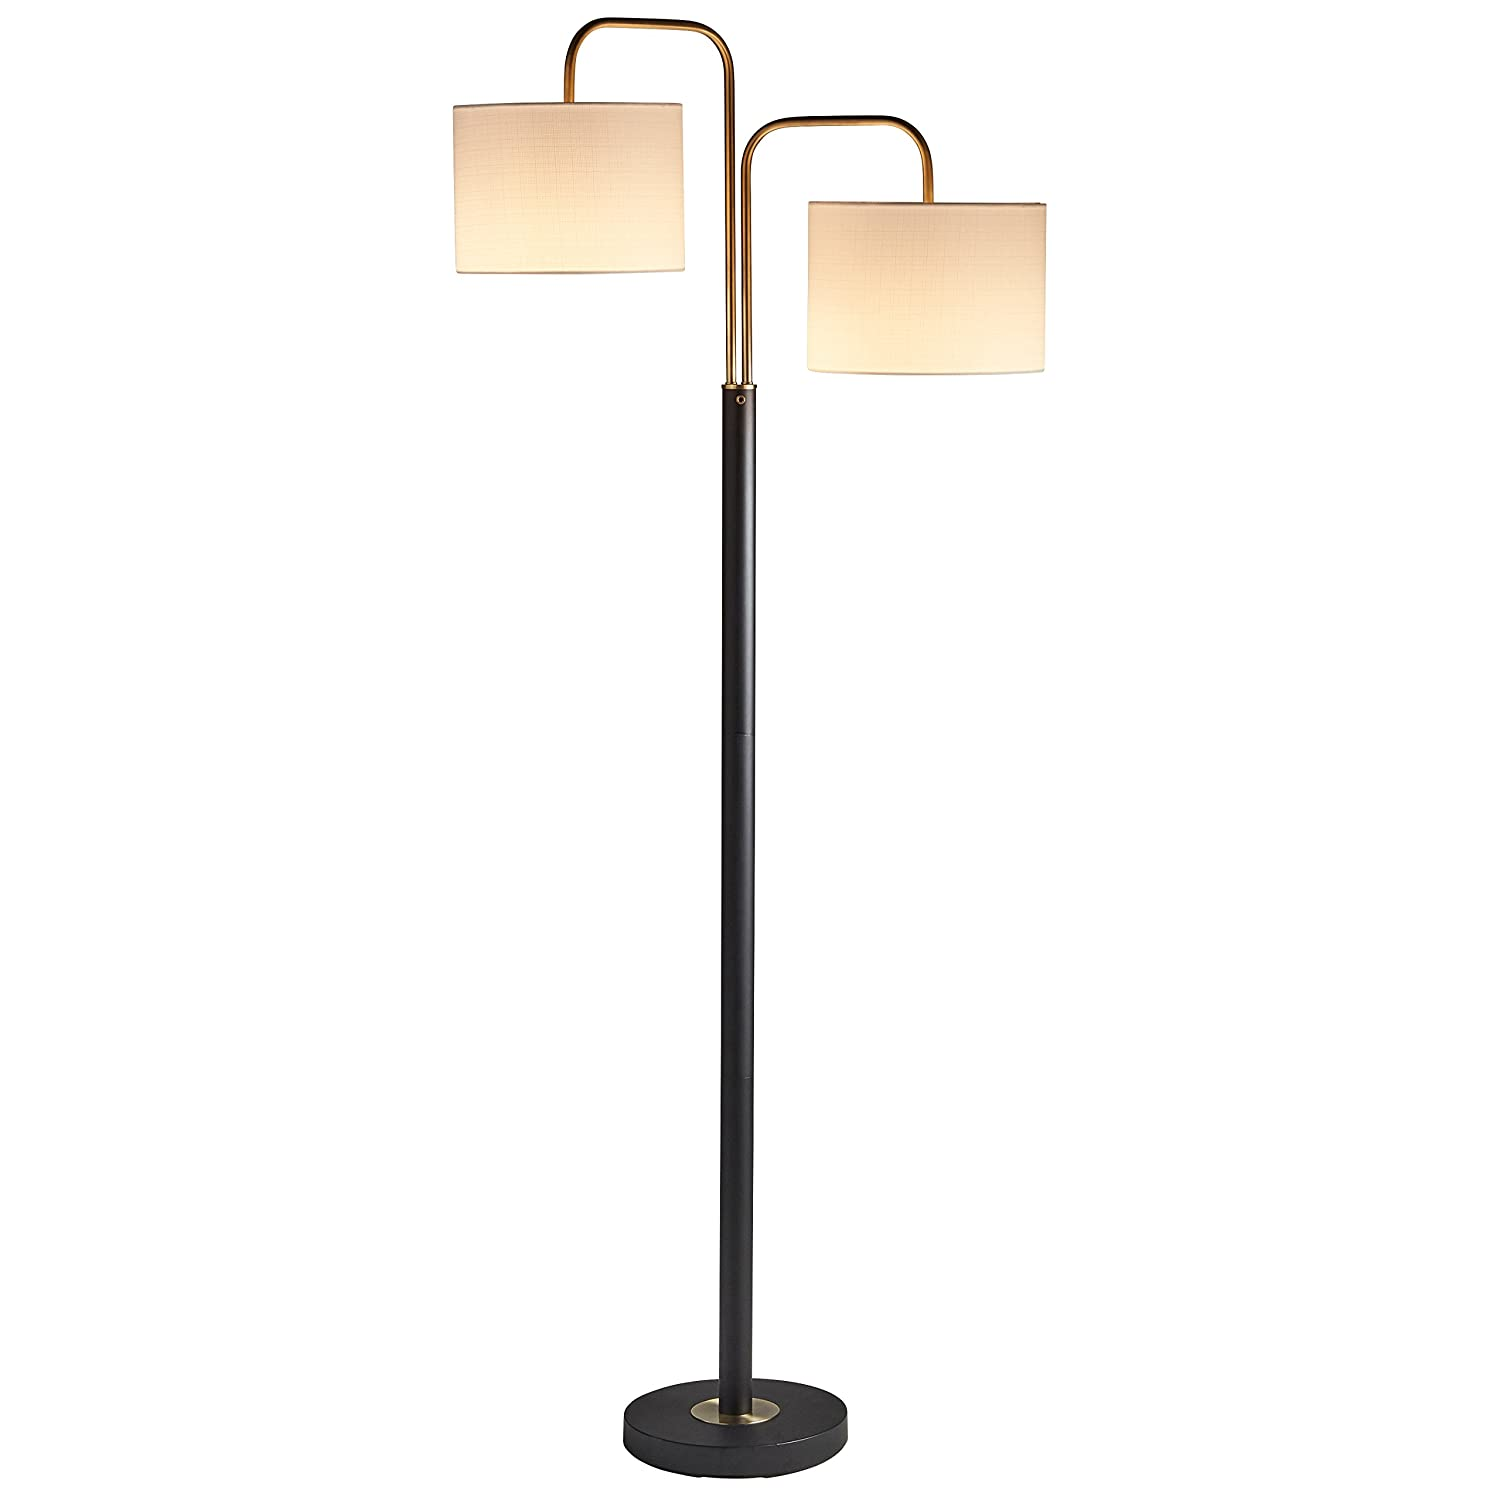 "Rivet Modern Floor Lamp, 62.5""H, With Bulb, Black & Antique Brass with Linen Shade"